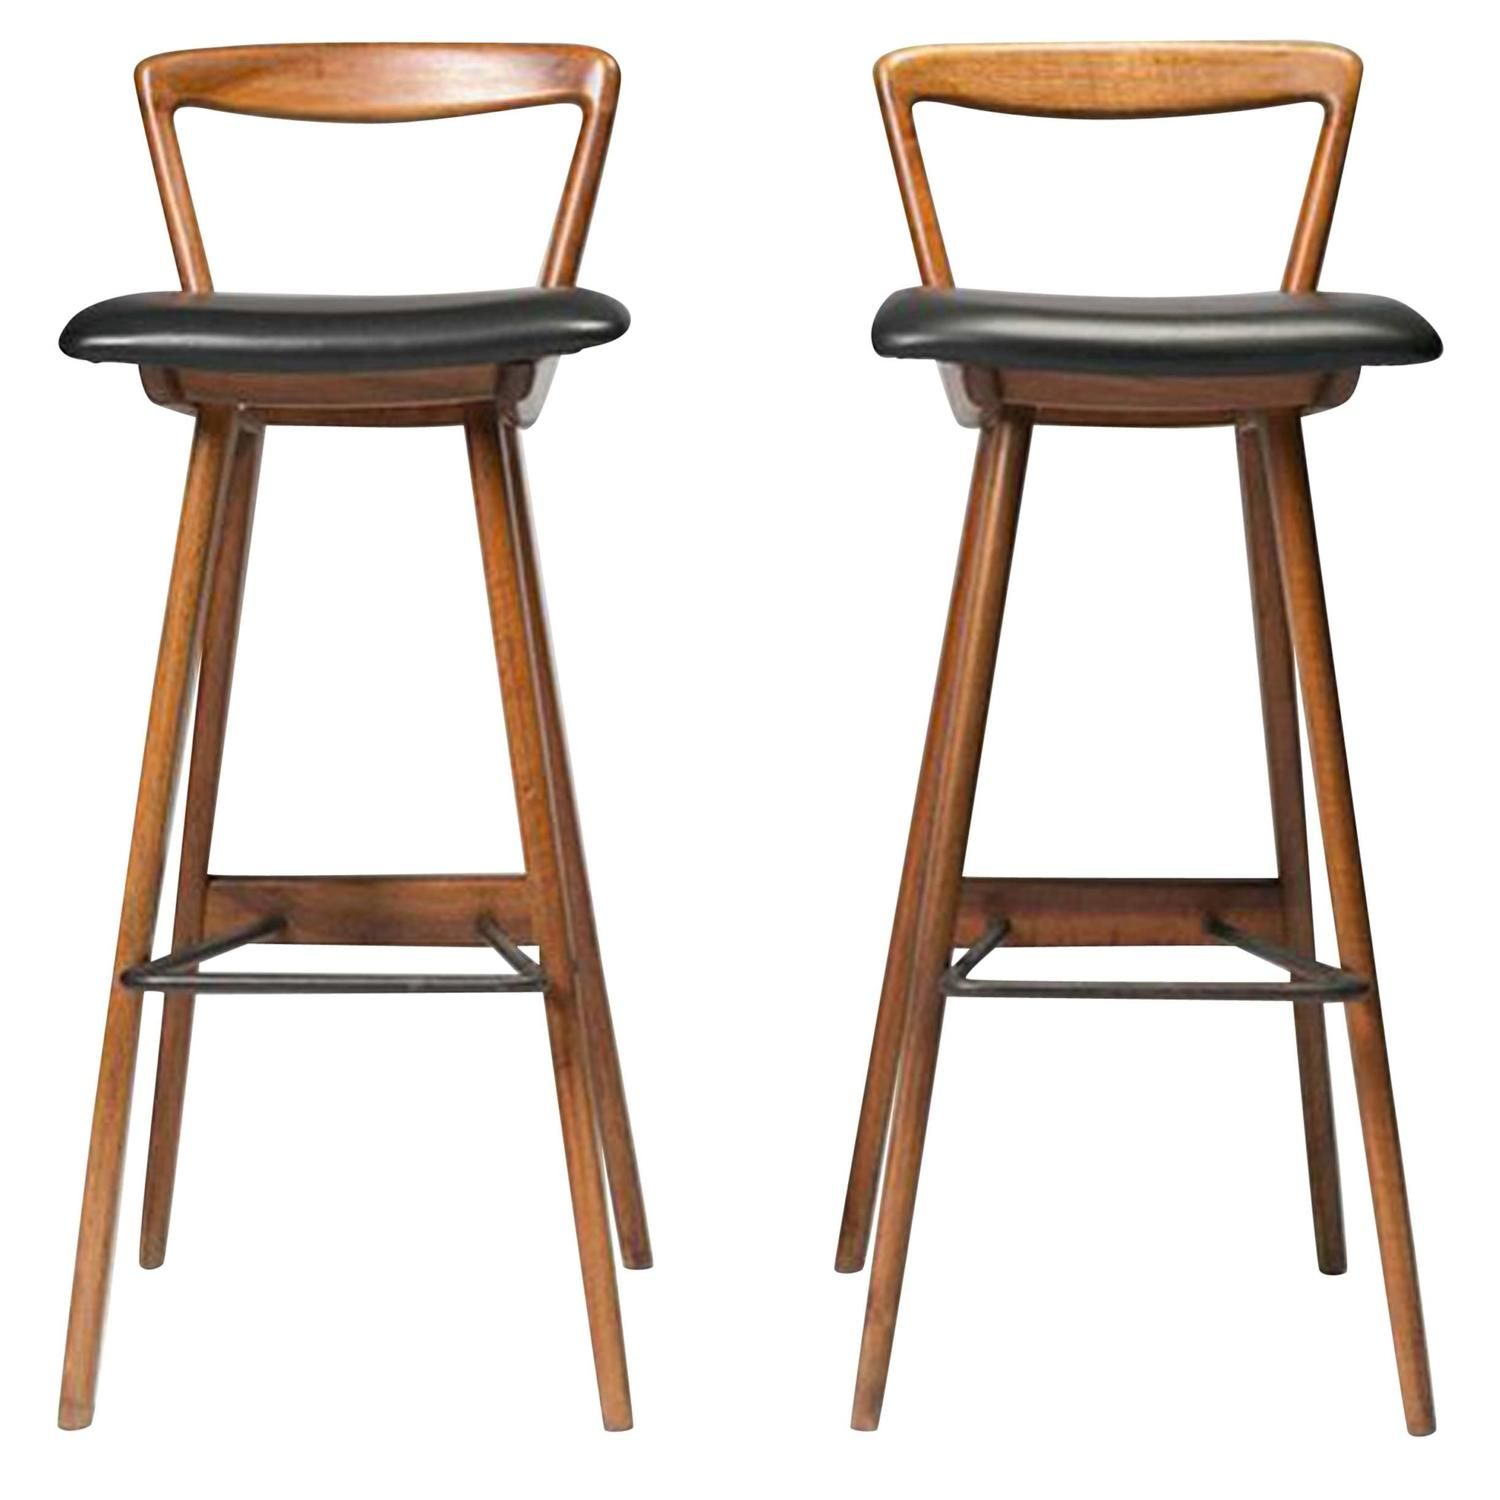 Contemporary Furniture And Stools: Mid-Century Modern Teak Barstools By Rosengren Hansen In